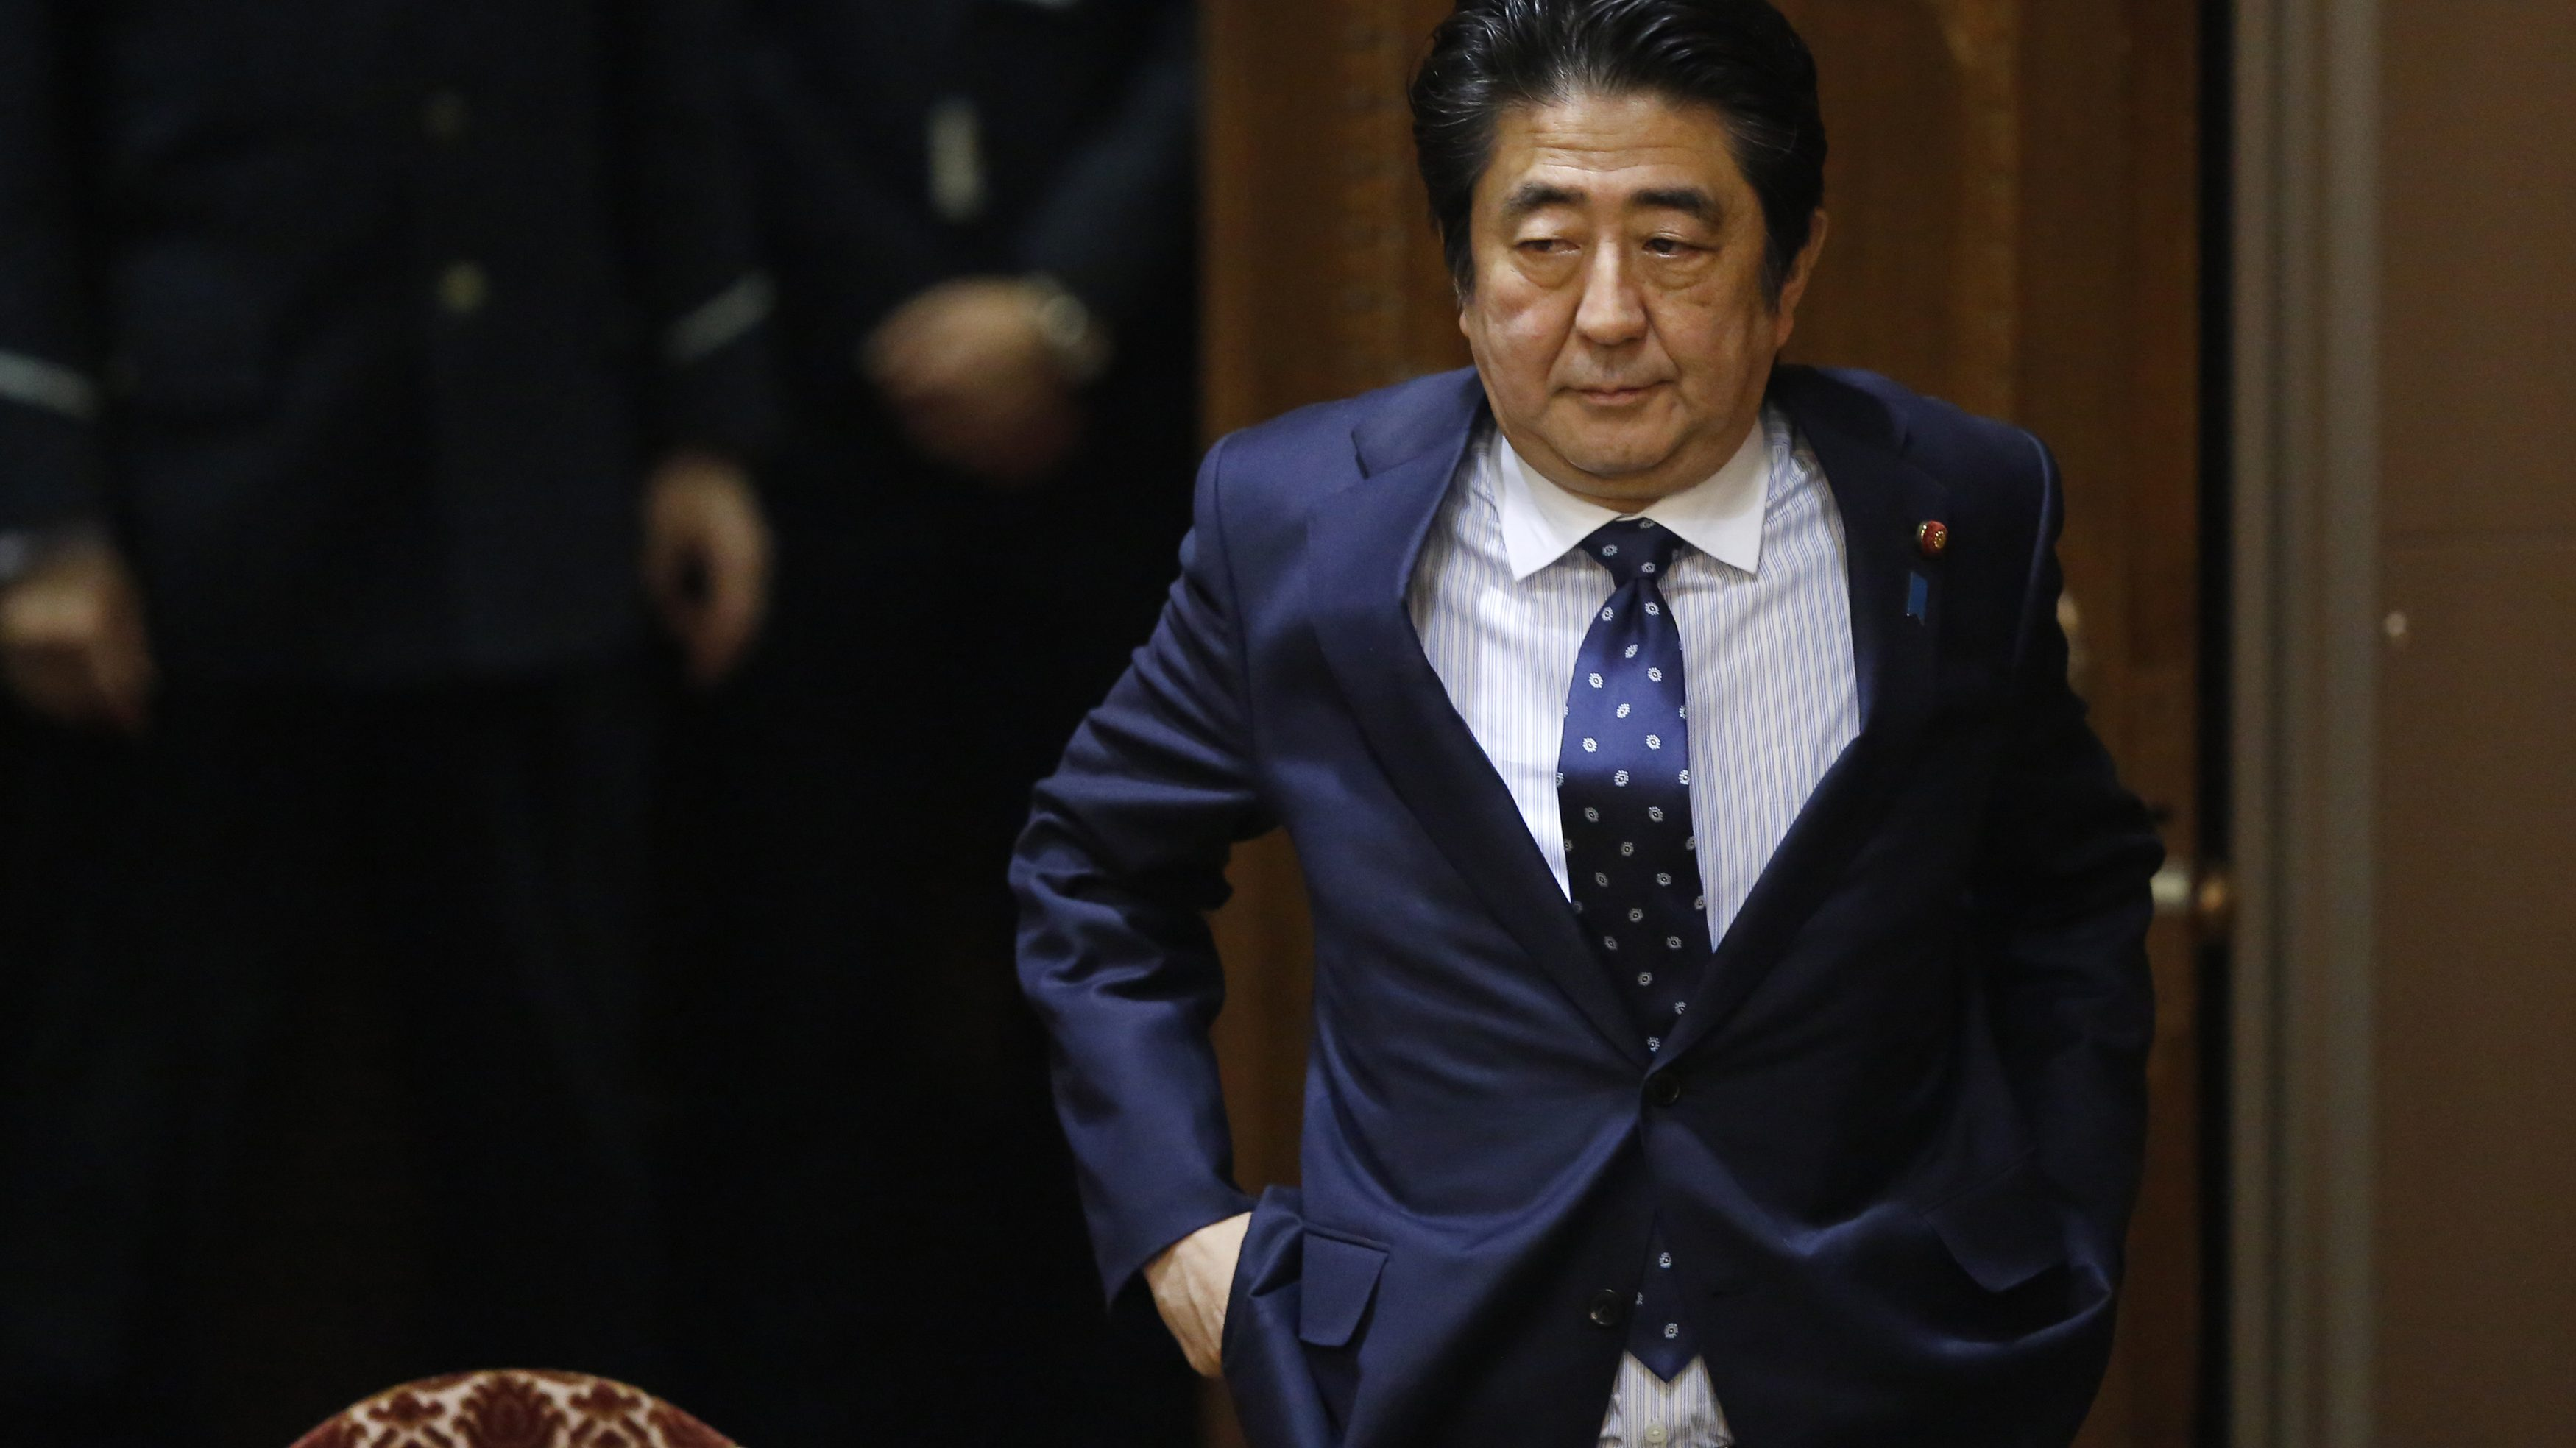 Japan's Prime Minister Shinzo Abe attends an upper house committee session at the parliament in Tokyo February 3, 2015.